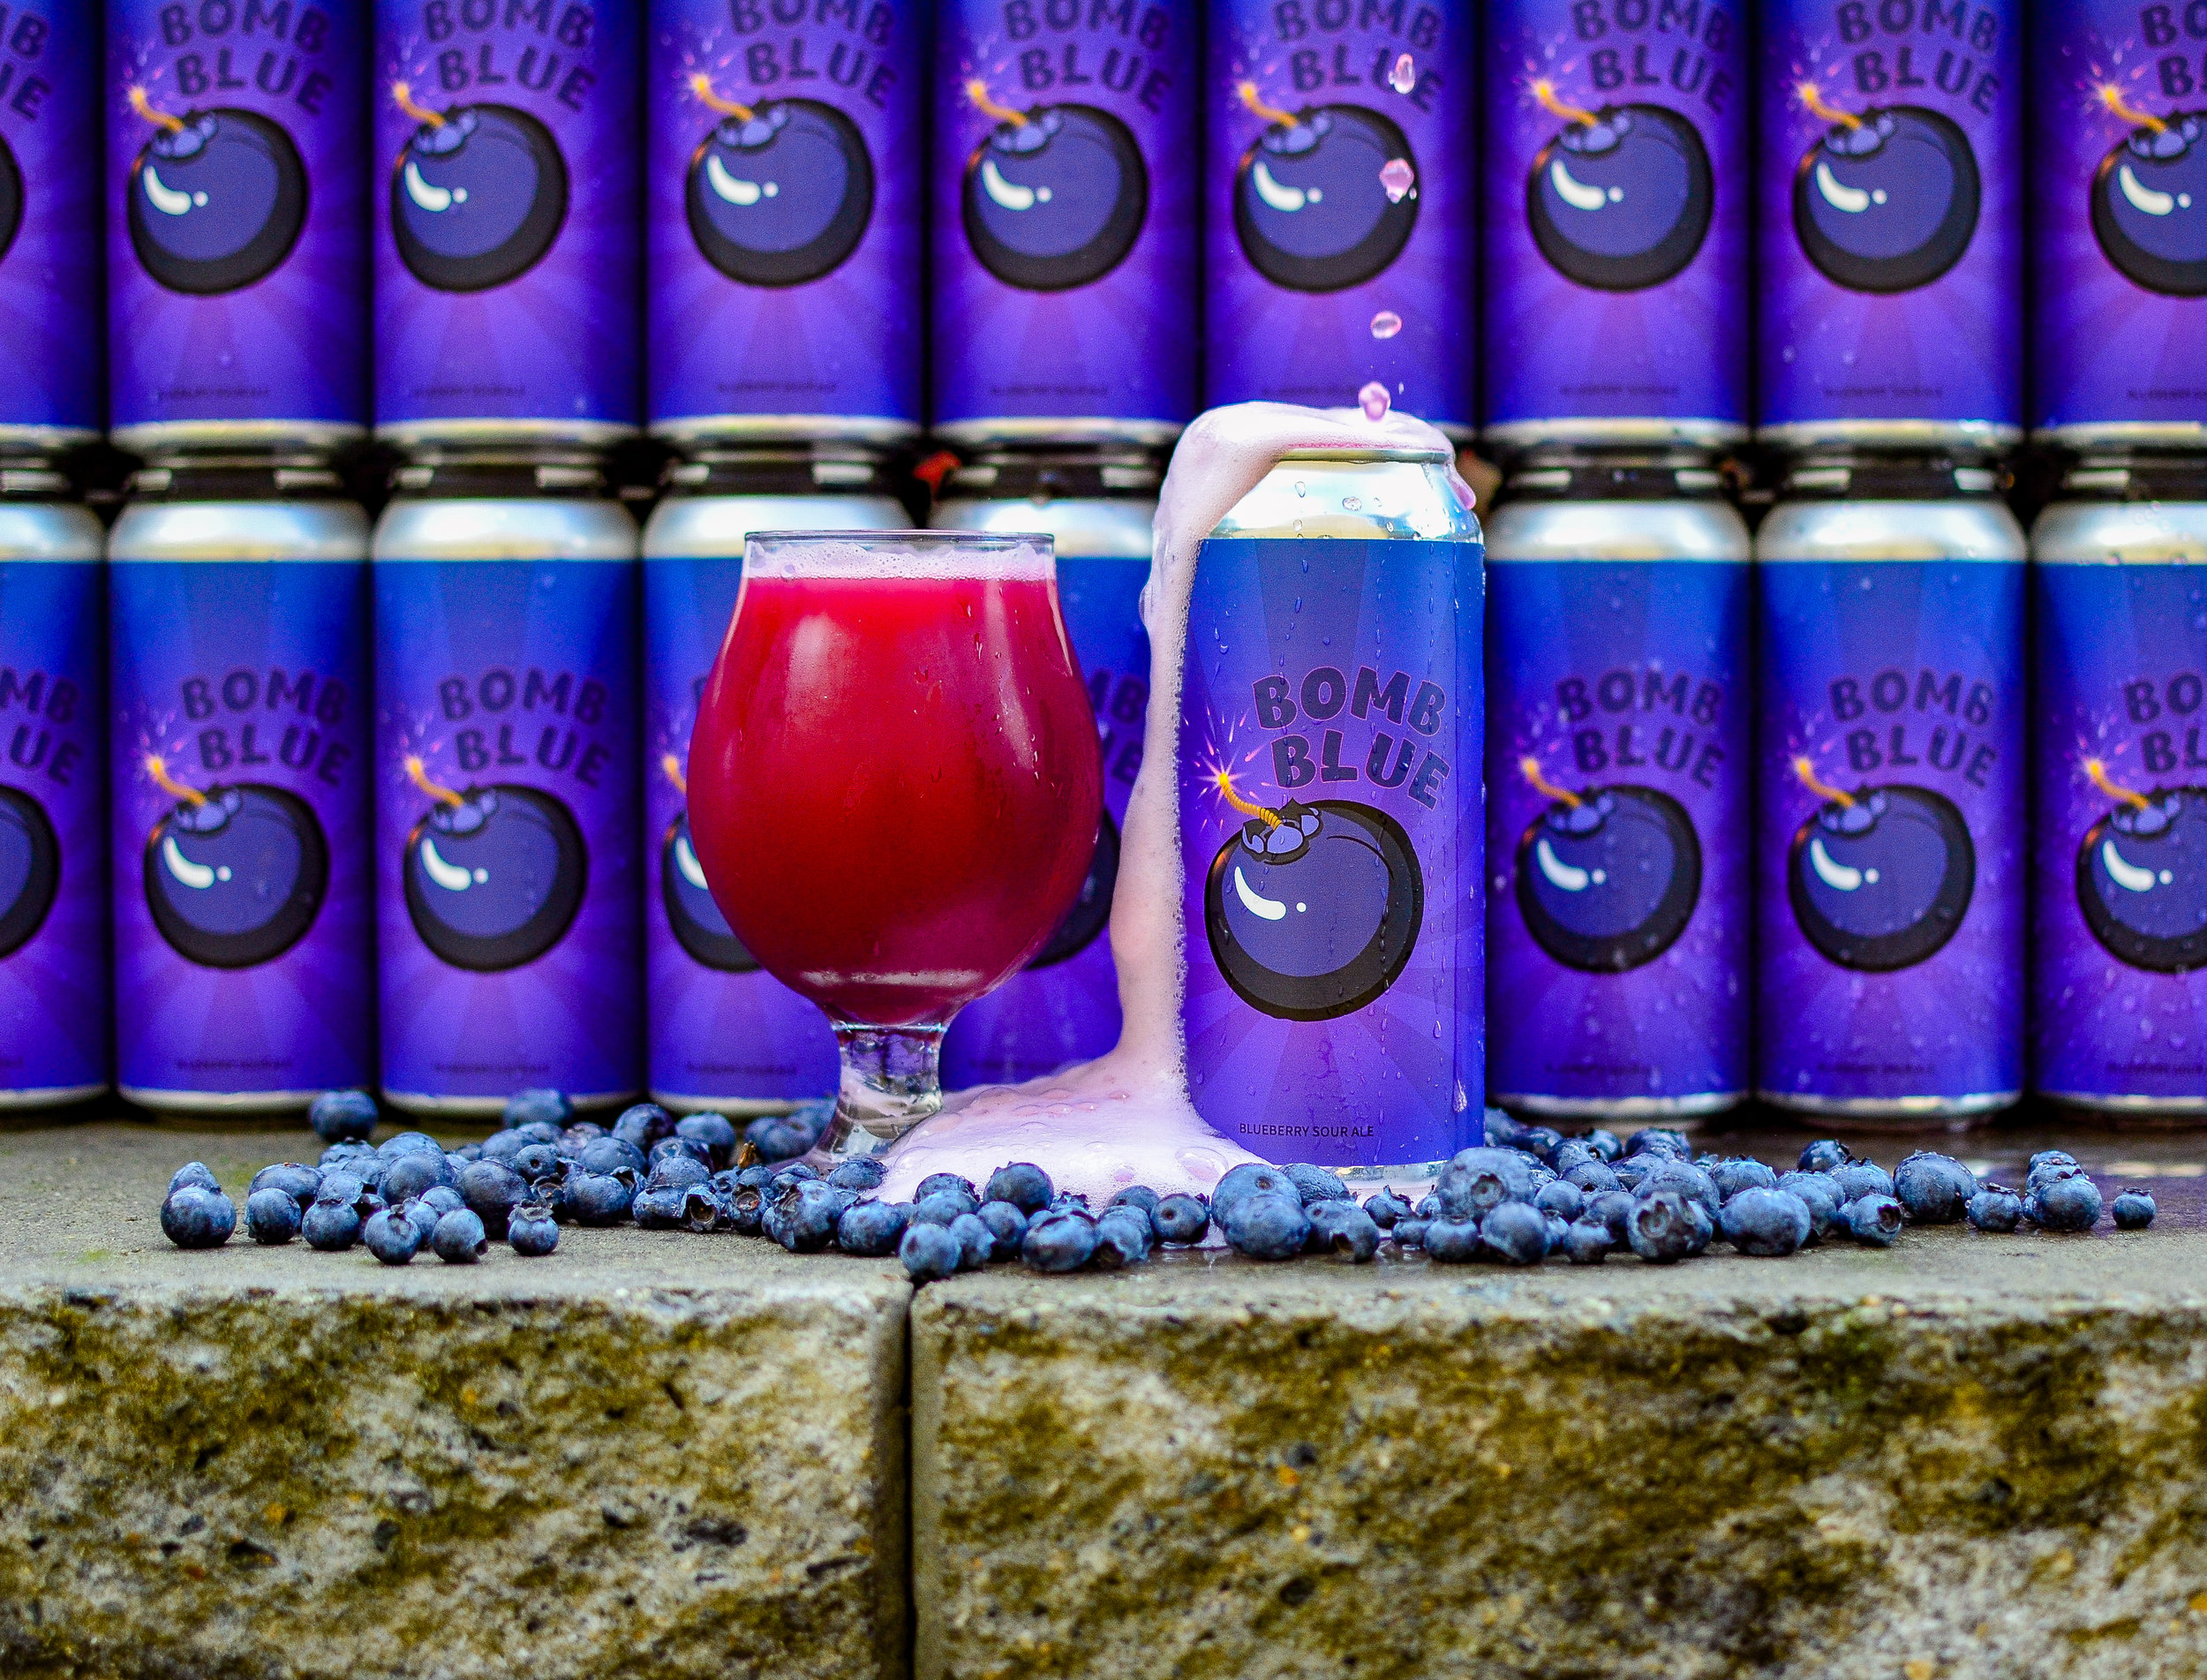 Bomb Blue, Sour Ale - A sour ale bursting with blueberries and tartness.